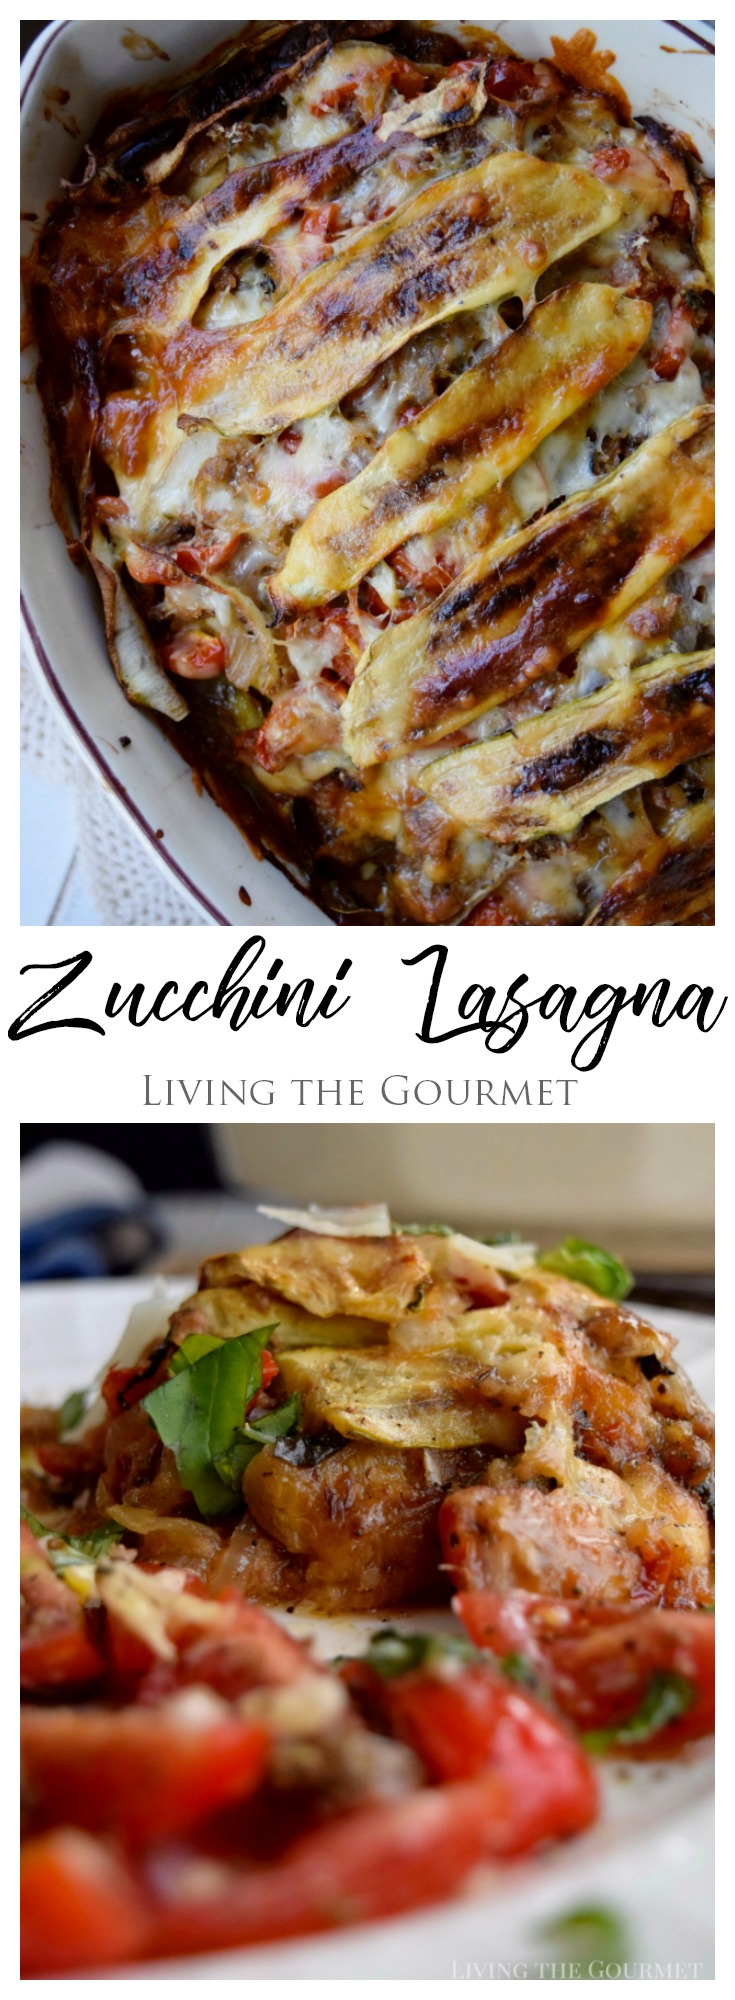 Living the Gourmet: Enjoy the season's final harvest of zucchini with this vegetarian Zucchini Lasagna!